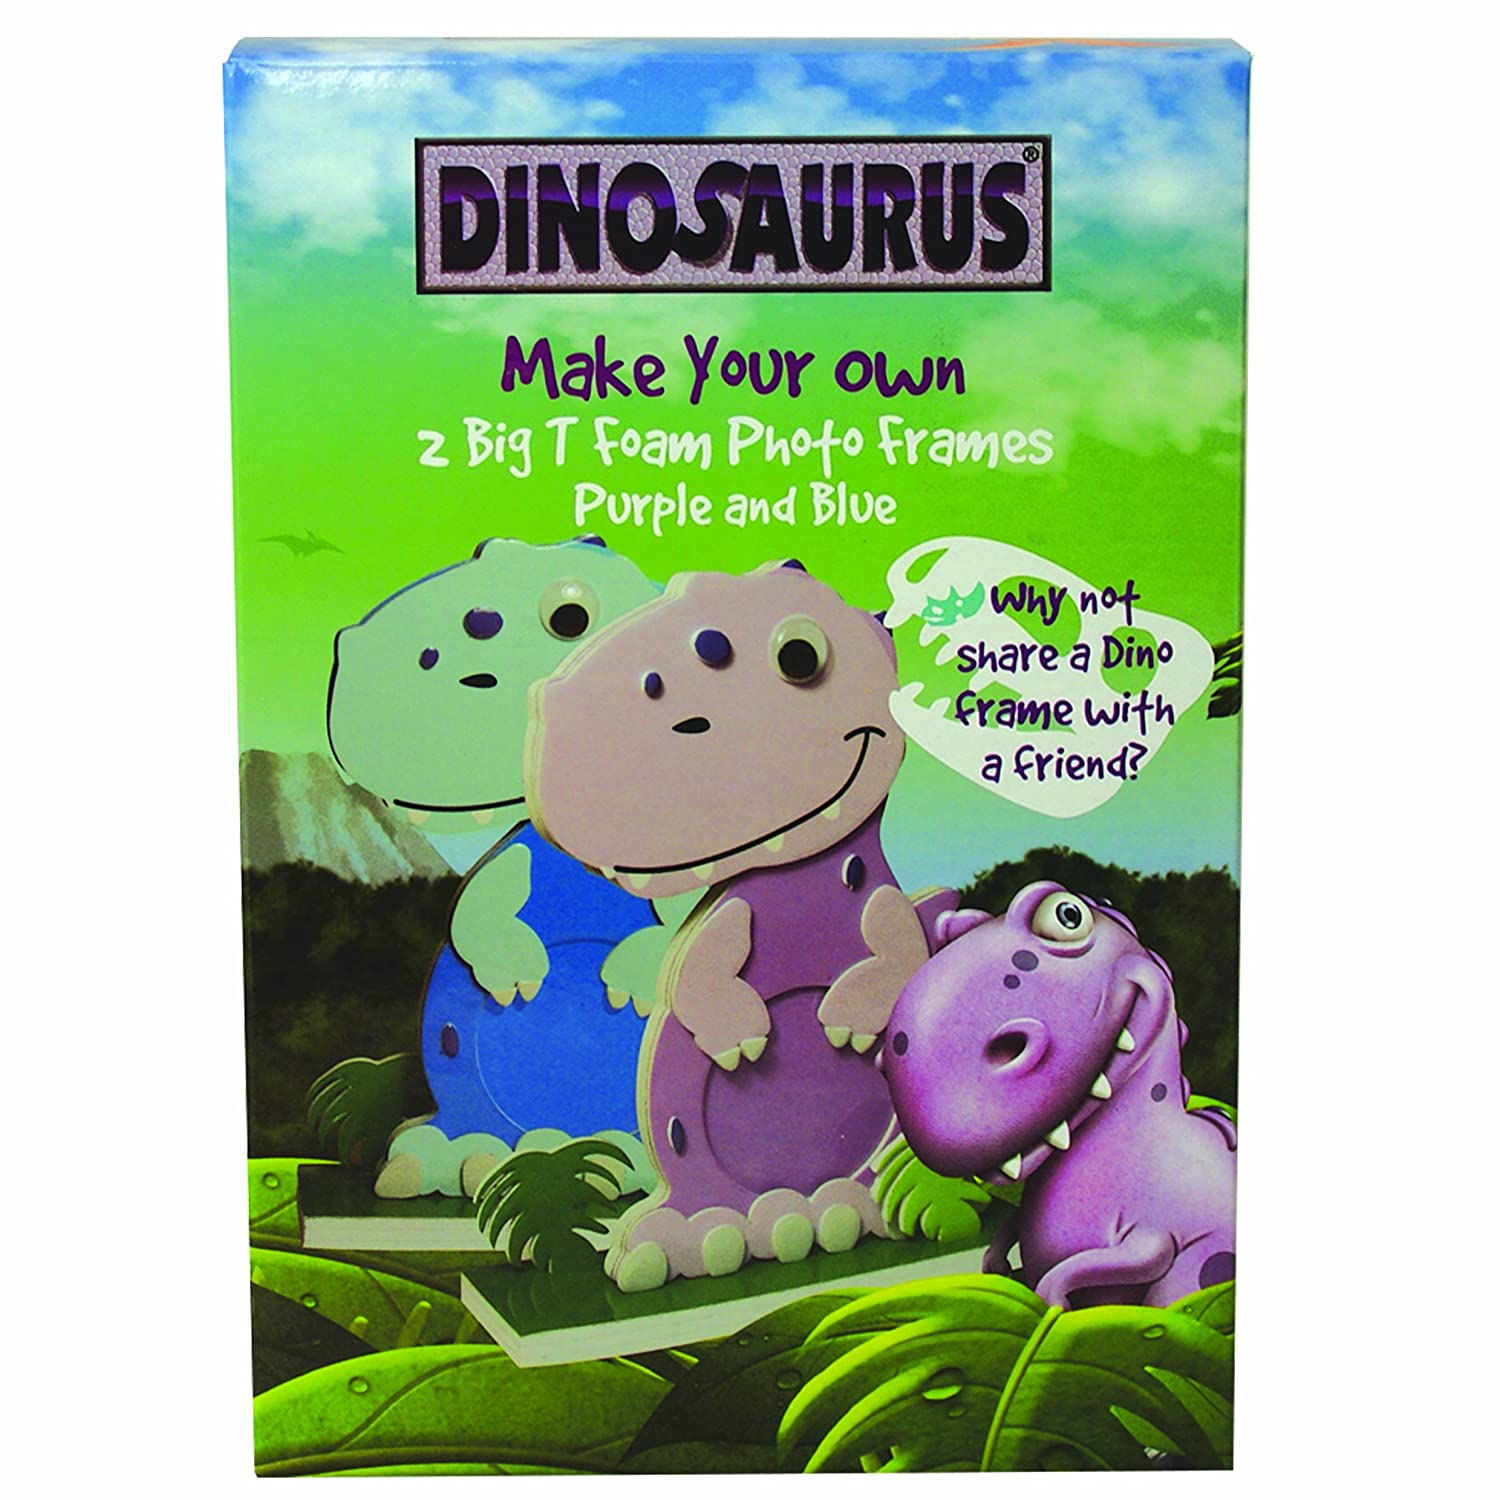 Dinosaurus Big T Foam Picture Frame: Amazon.co.uk: Kitchen & Home